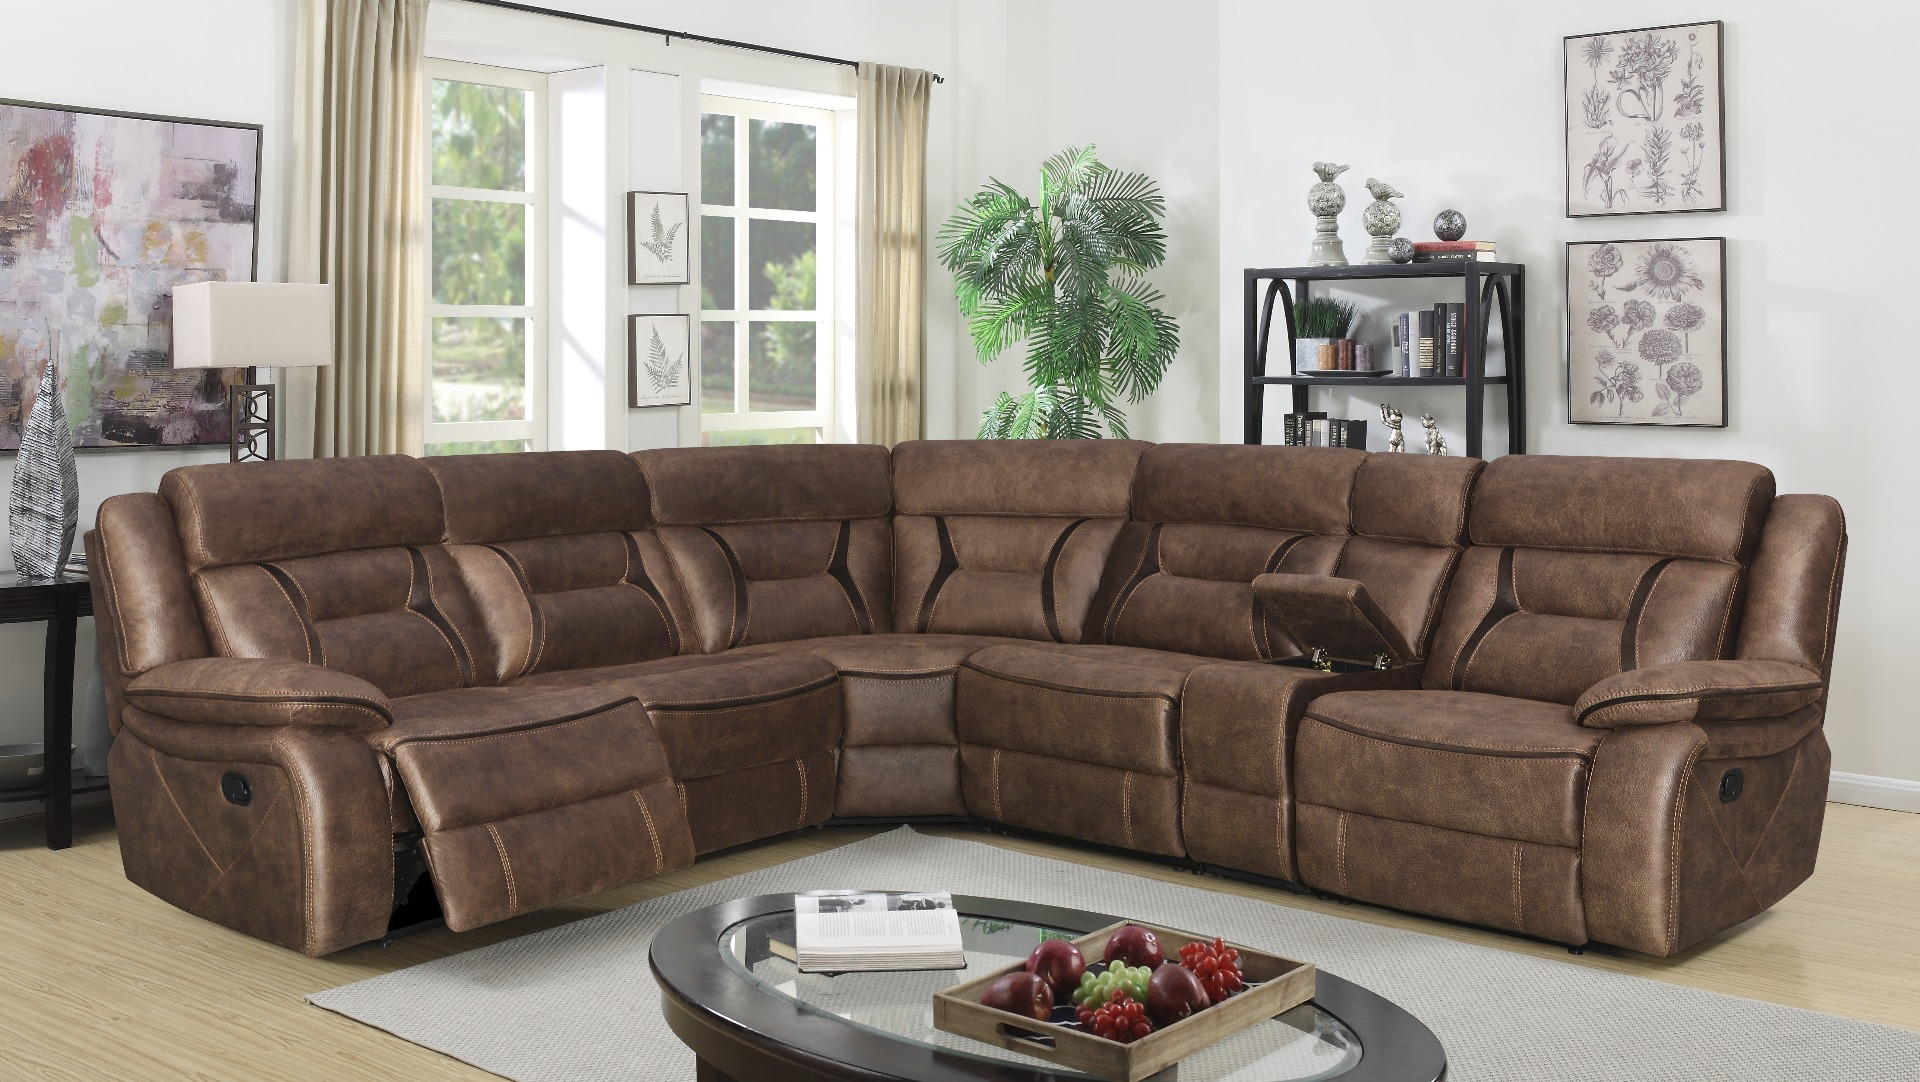 Ashbrook Furniture Store Manchester Nh Nashua Nh with regard to Low Priced Living Room Sets